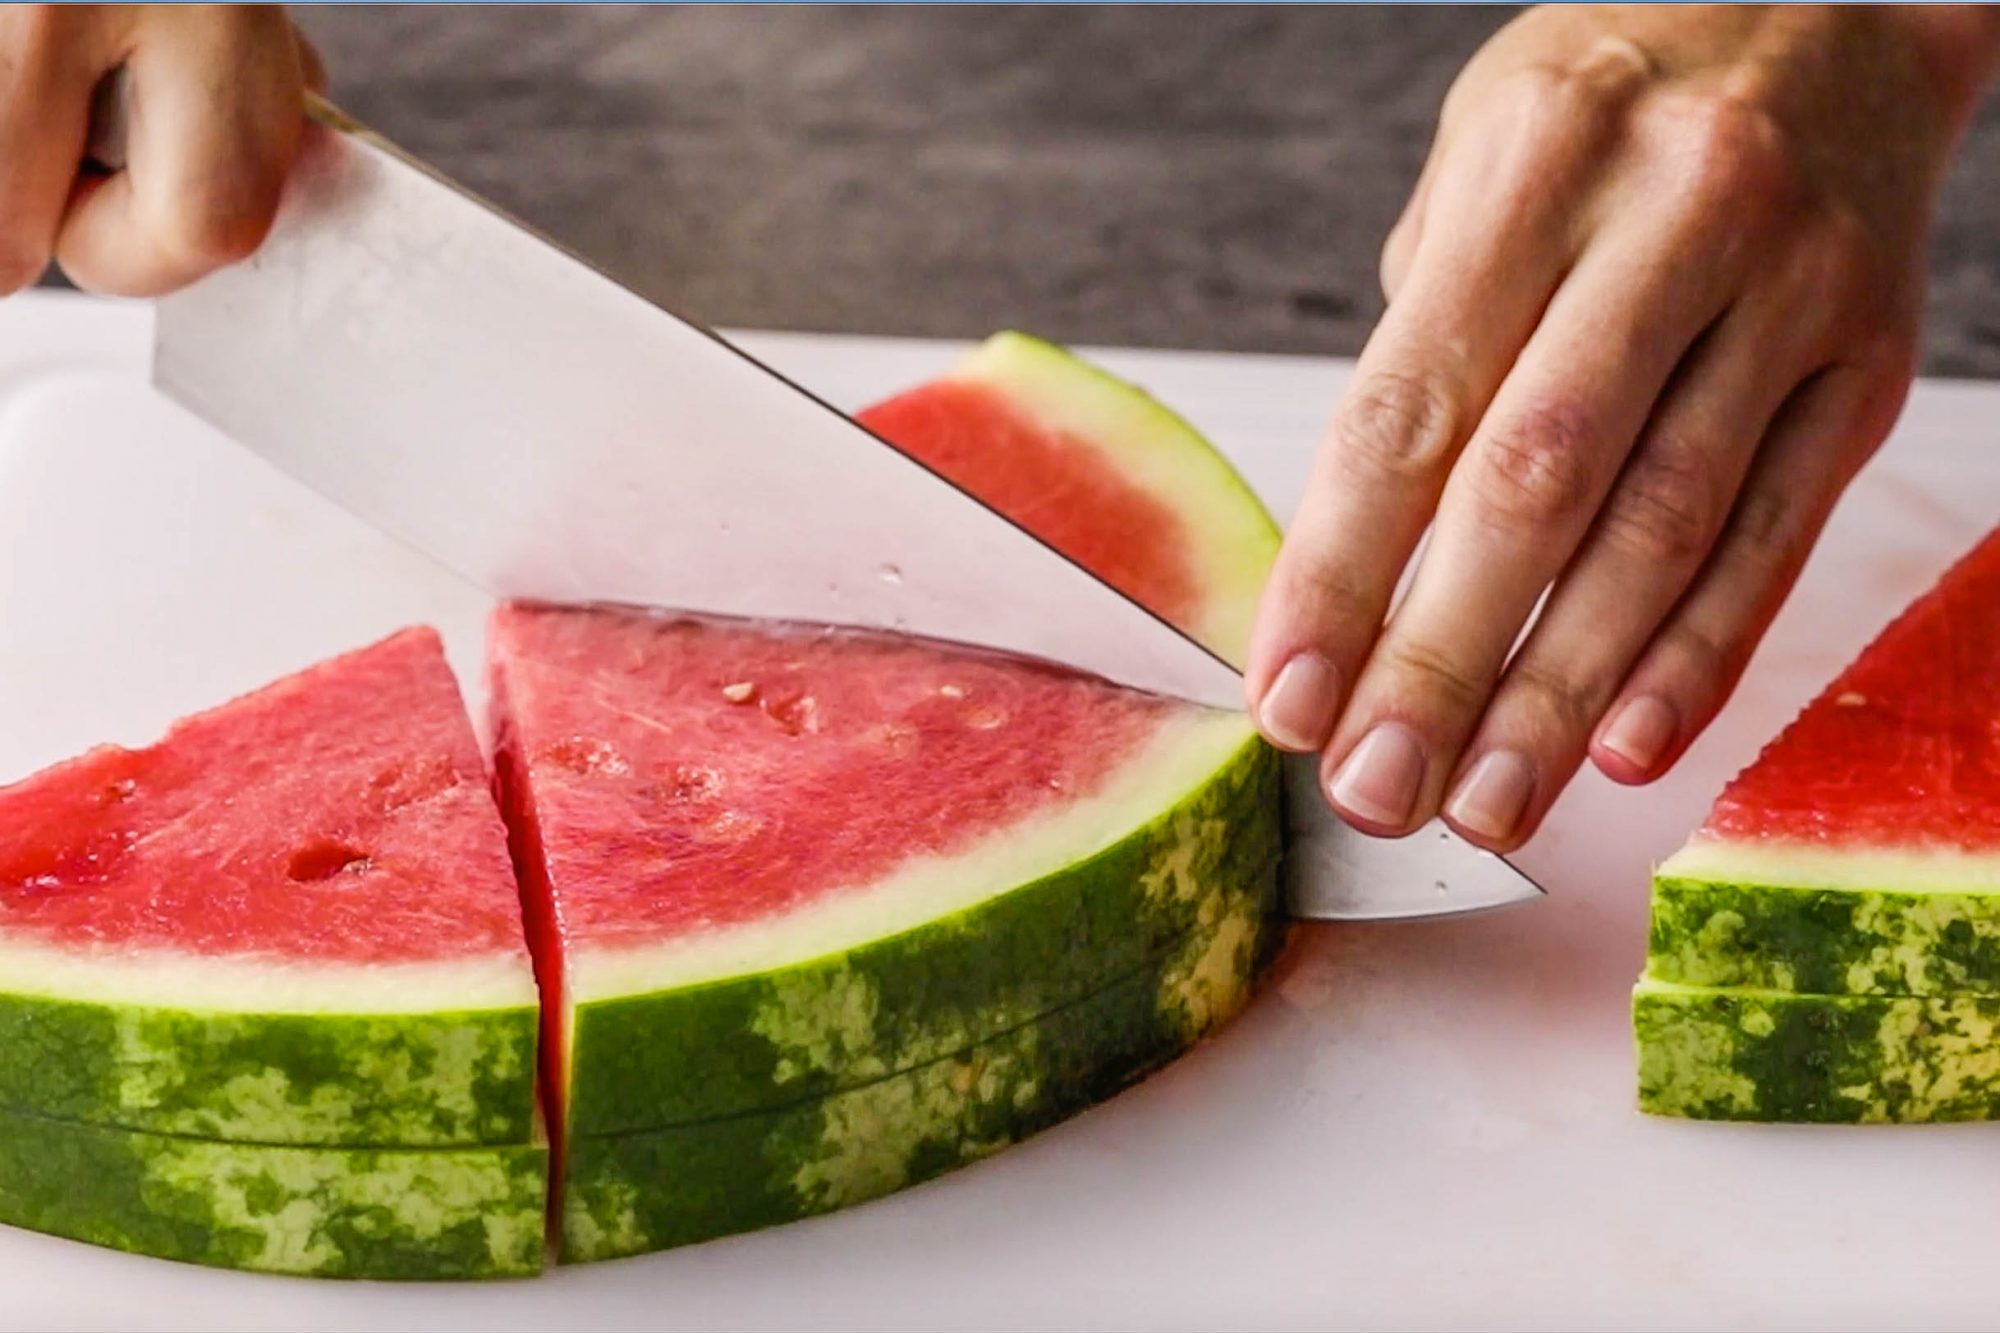 Cutting a watermelon into wedges